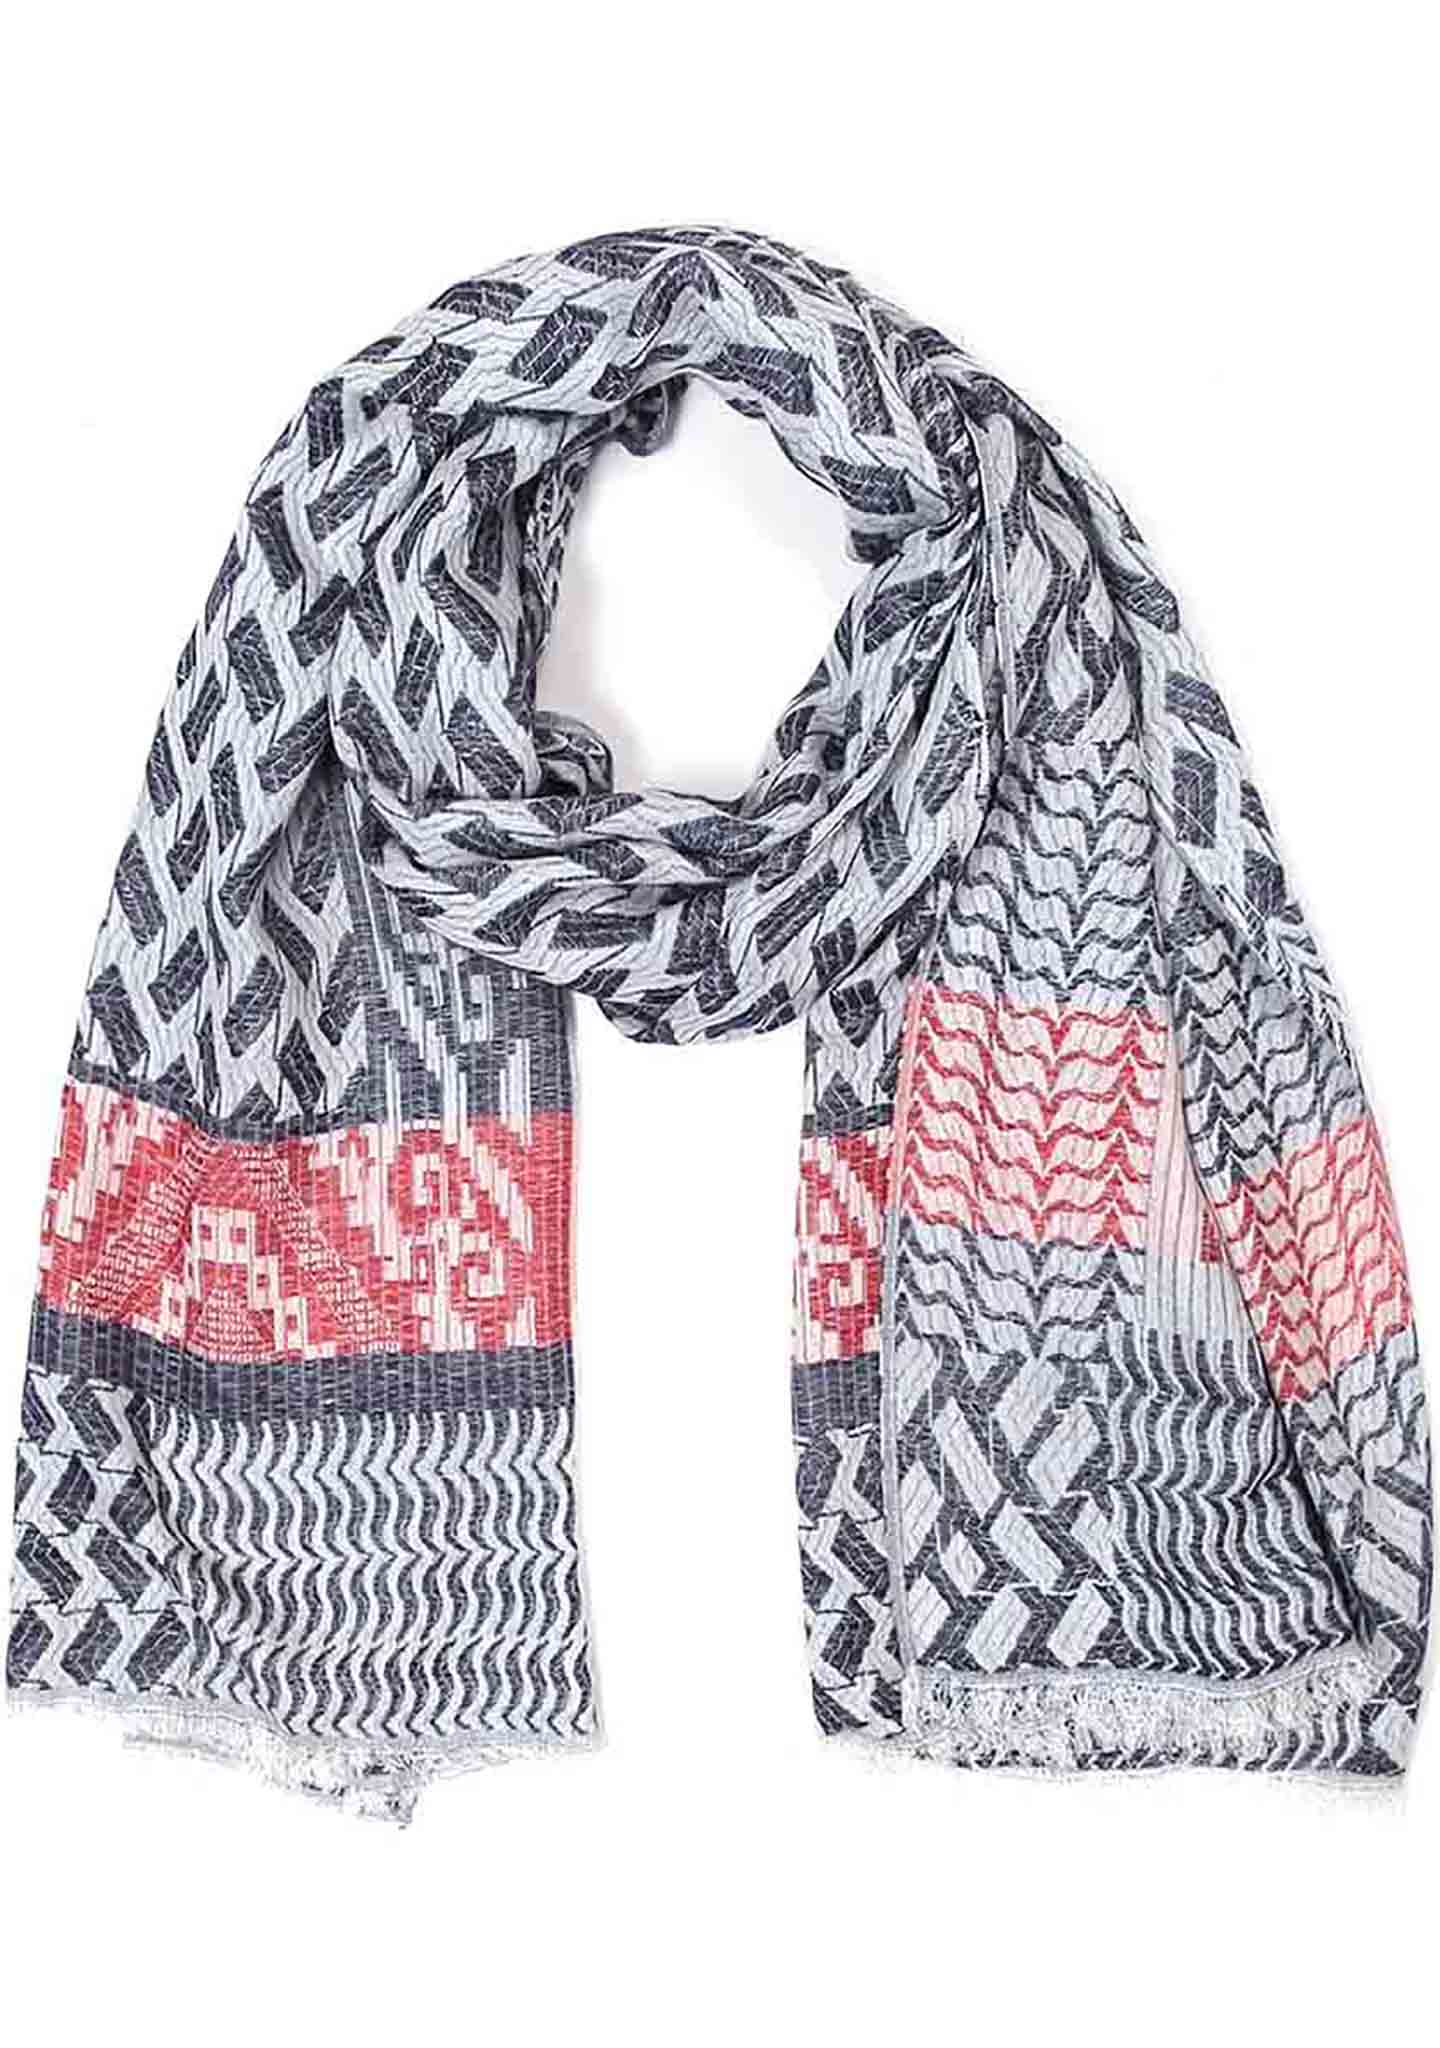 7 LUXE Tribal Scarf in Navy